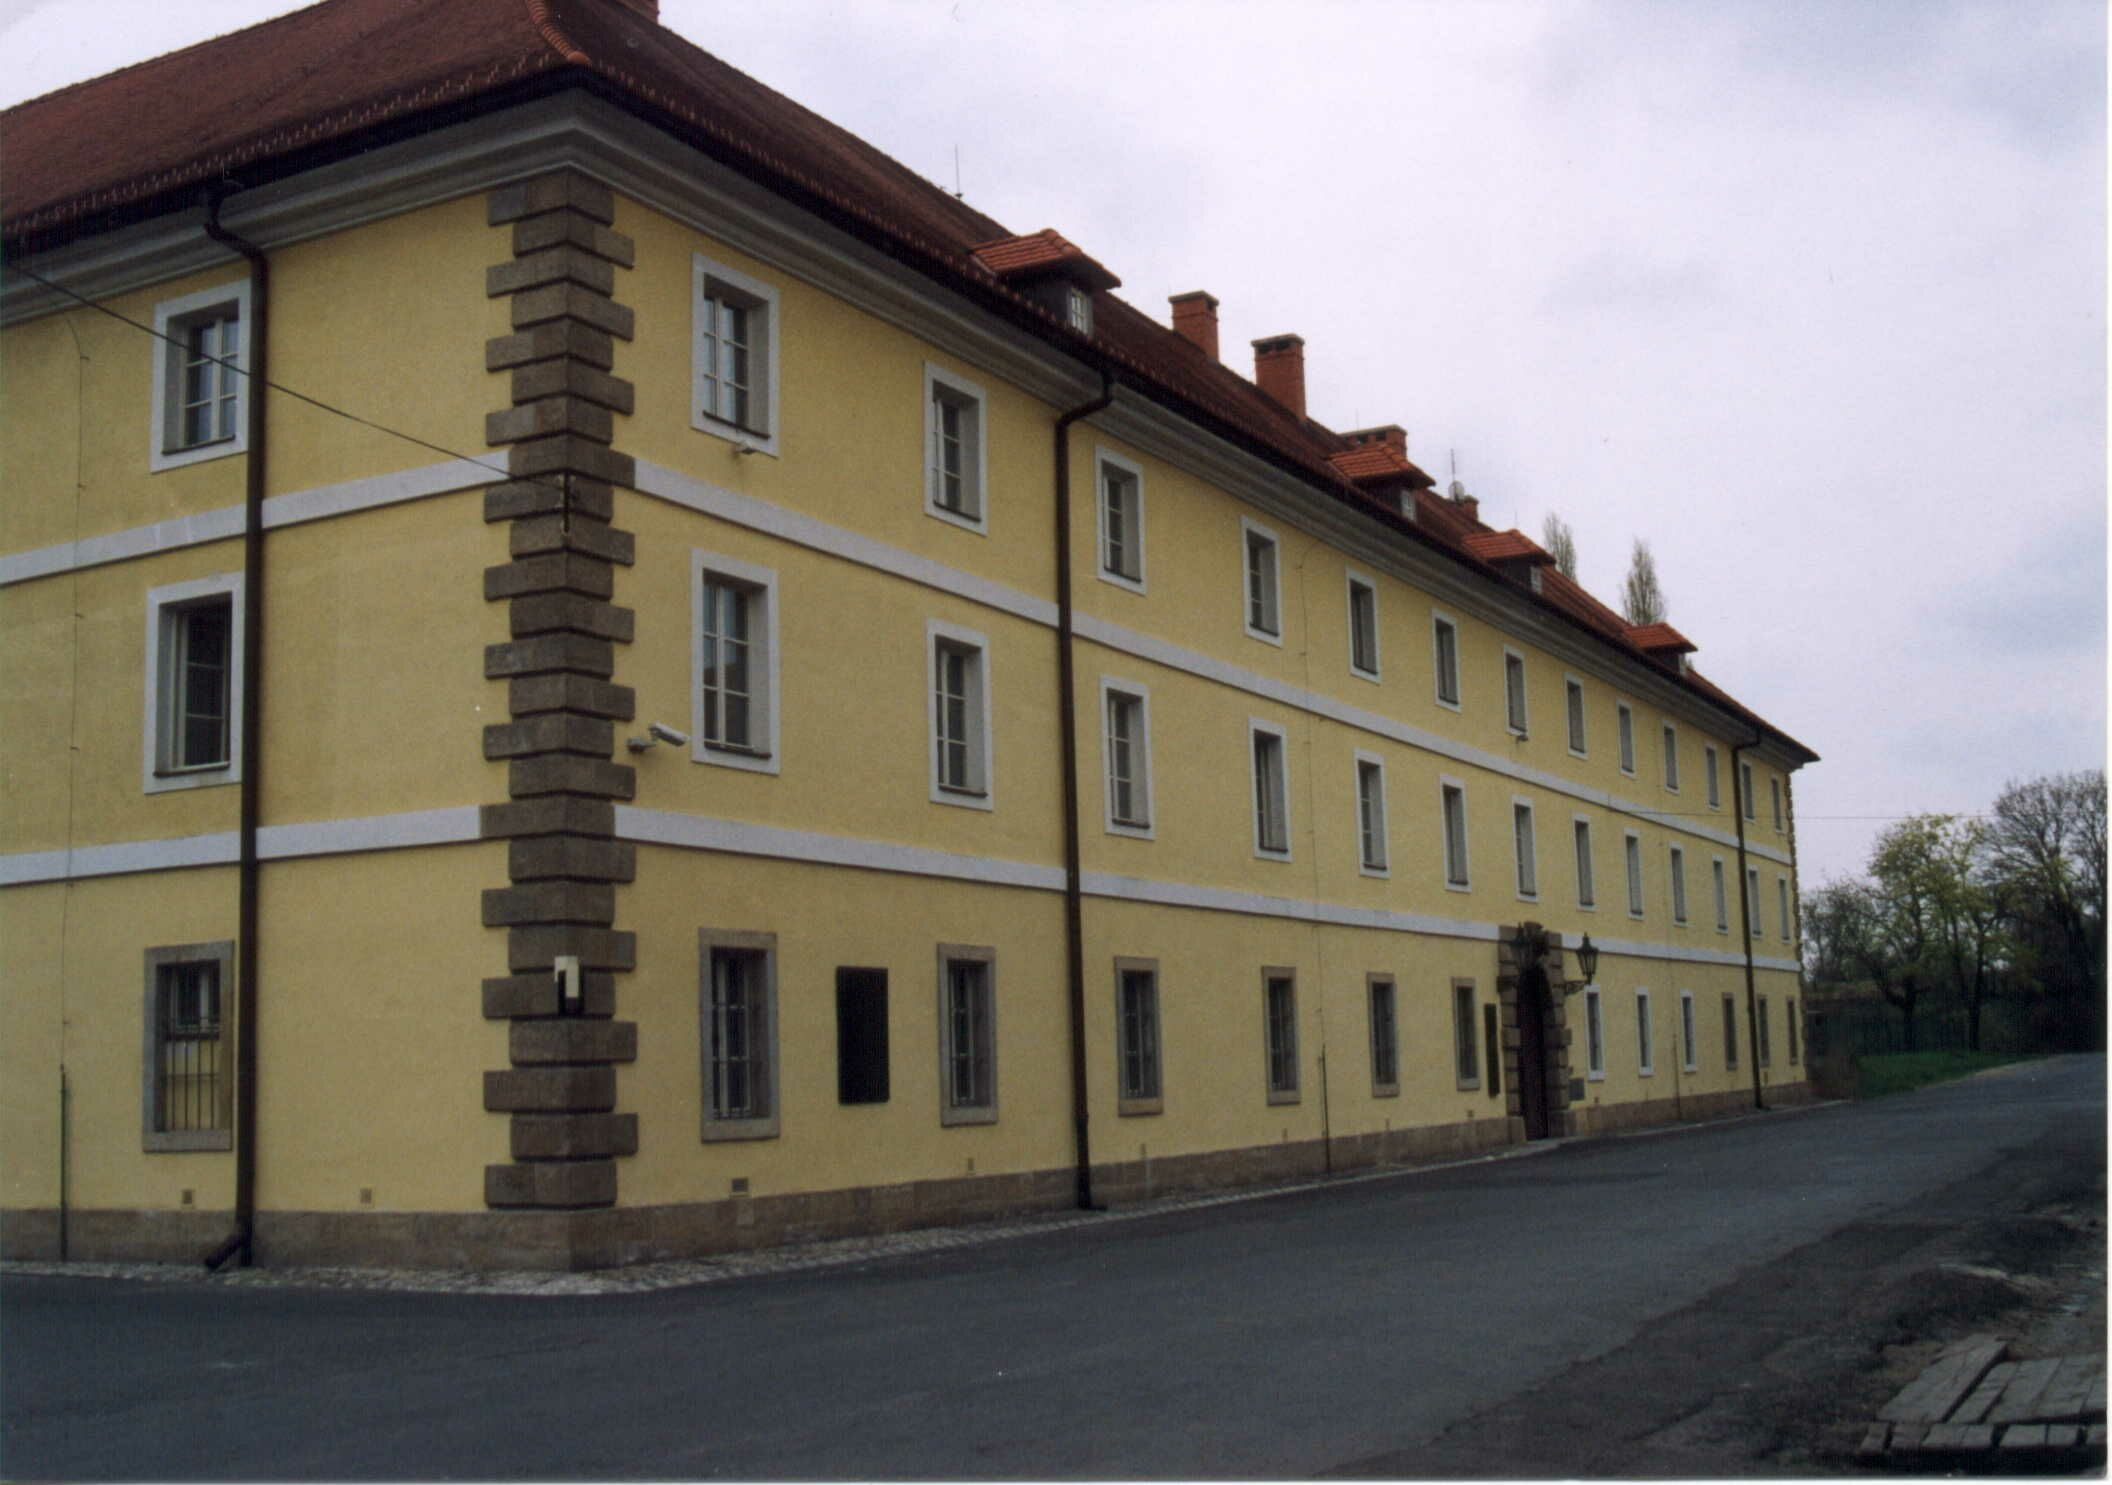 The Magdeburg Barracks in Terezín